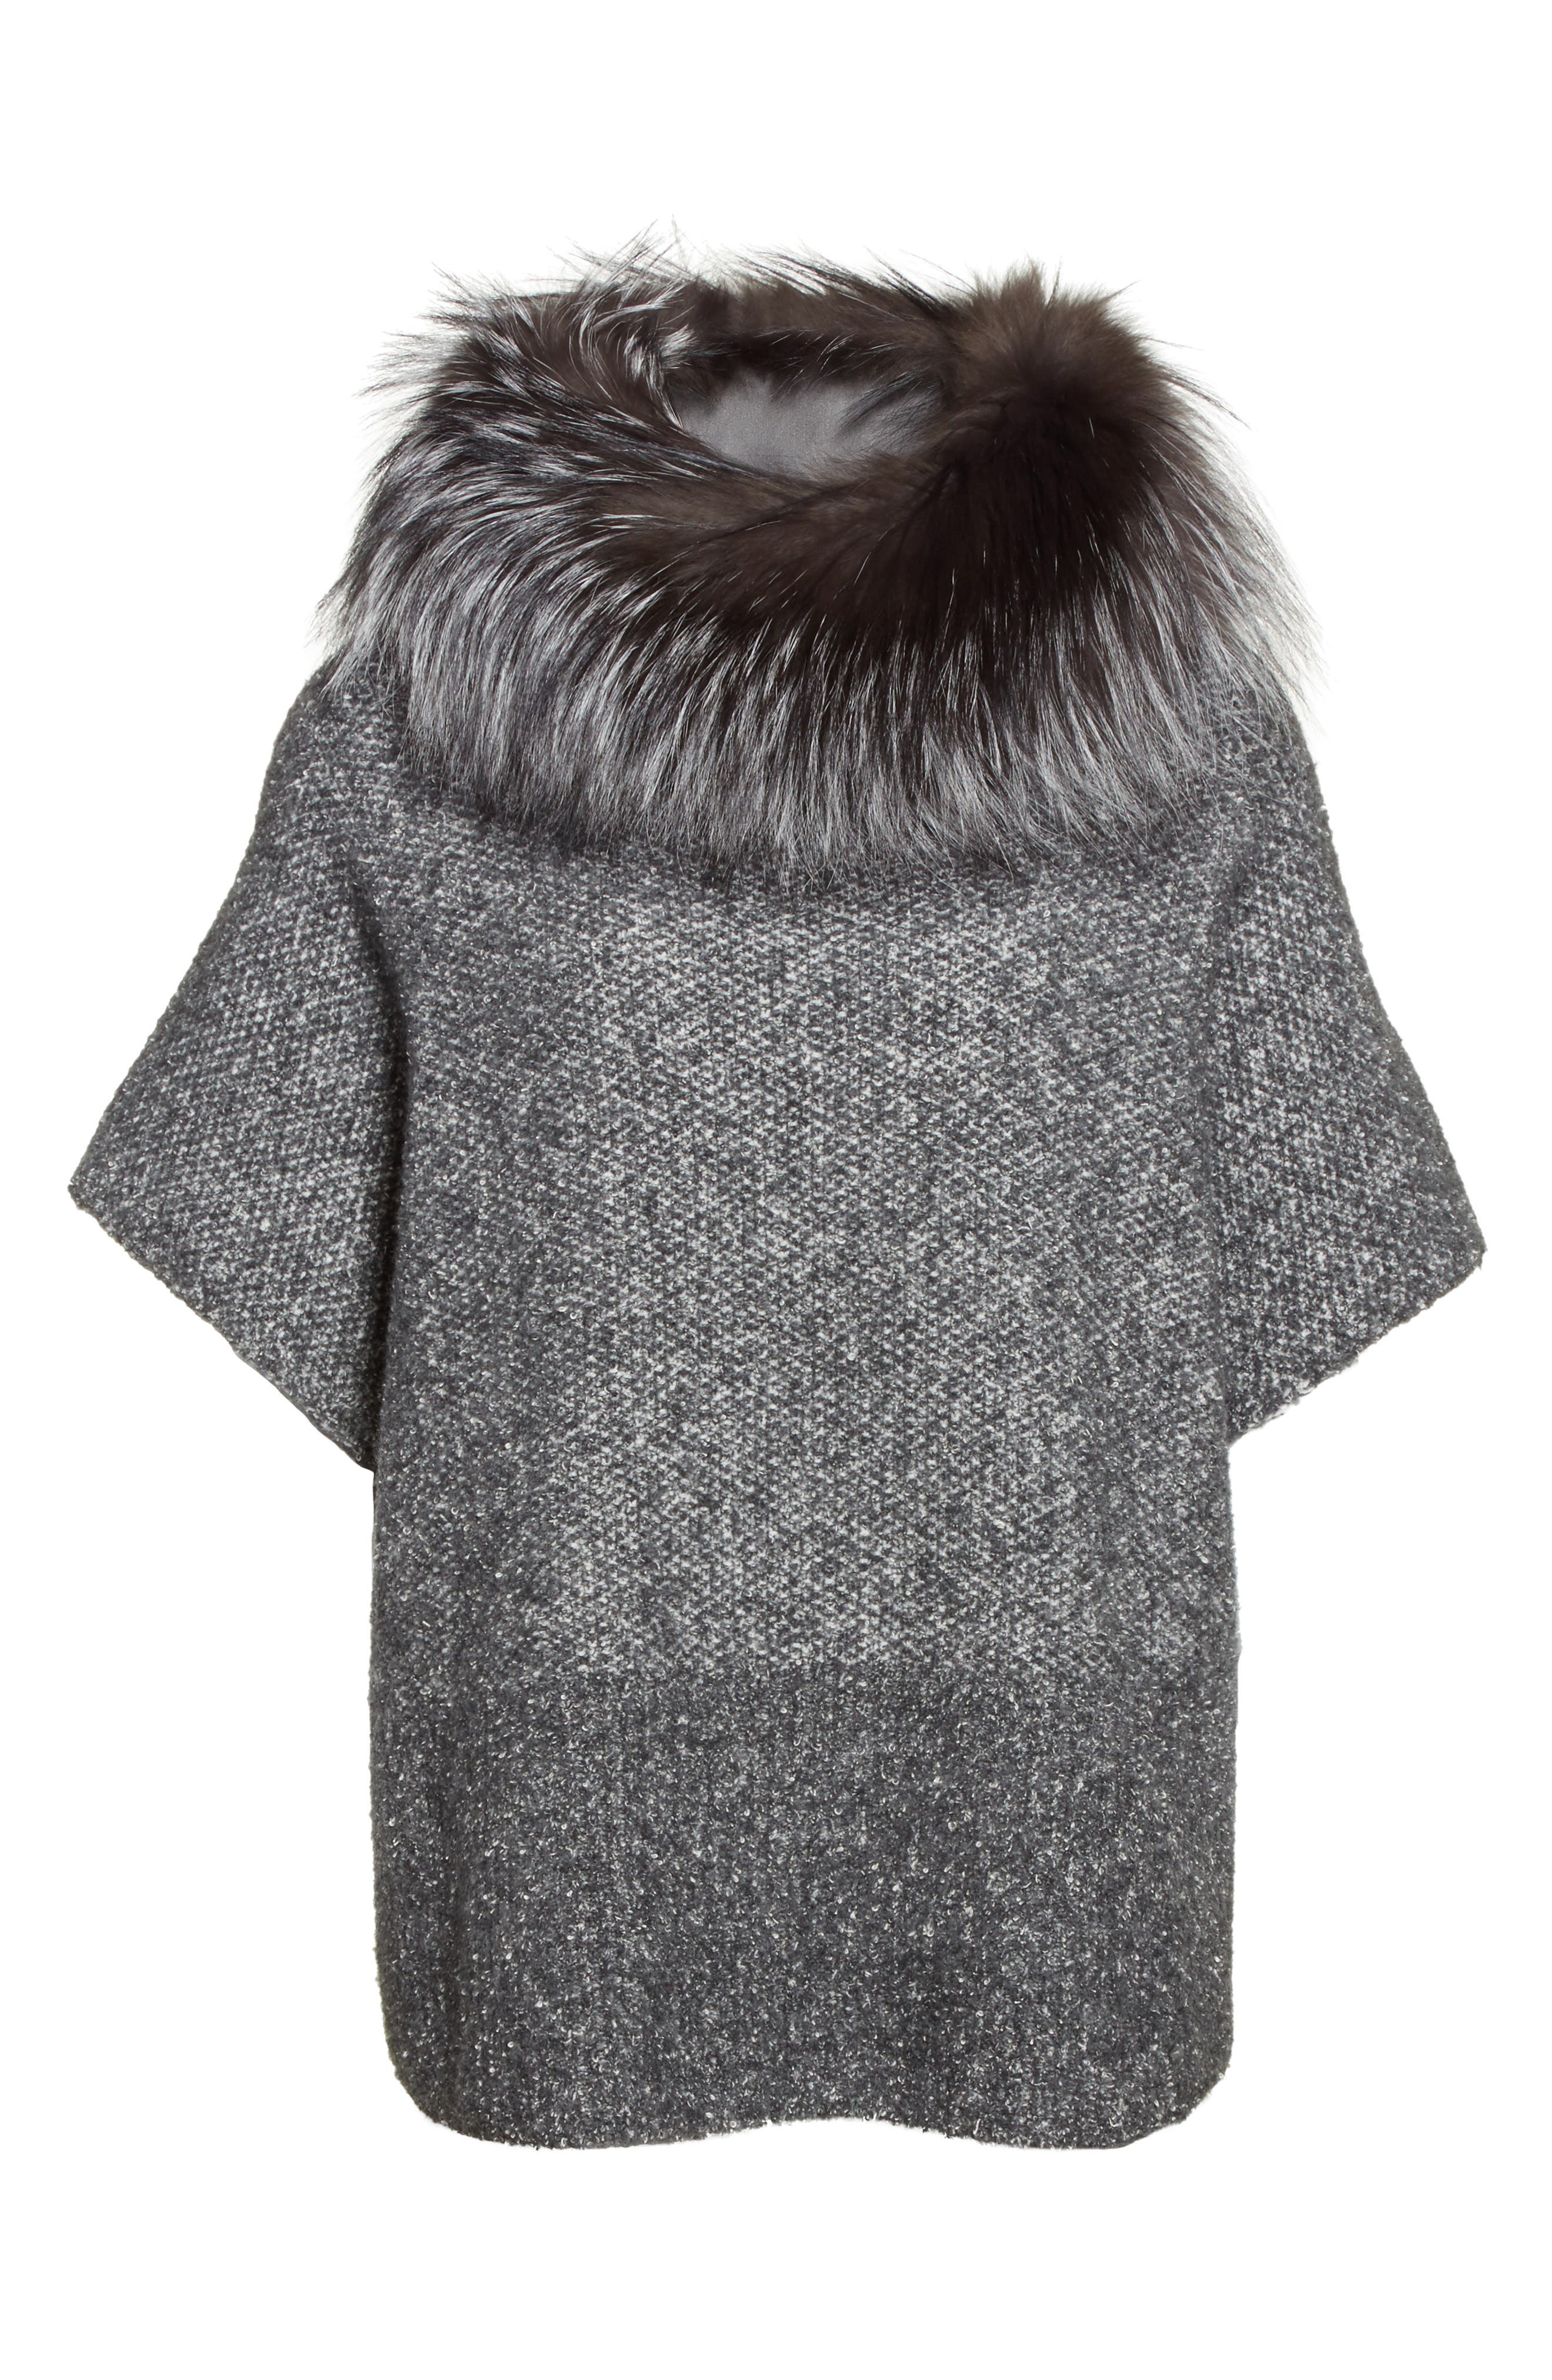 Pebble Tweed Knit Poncho with Genuine Fox Fur Collar,                             Alternate thumbnail 5, color,                             021